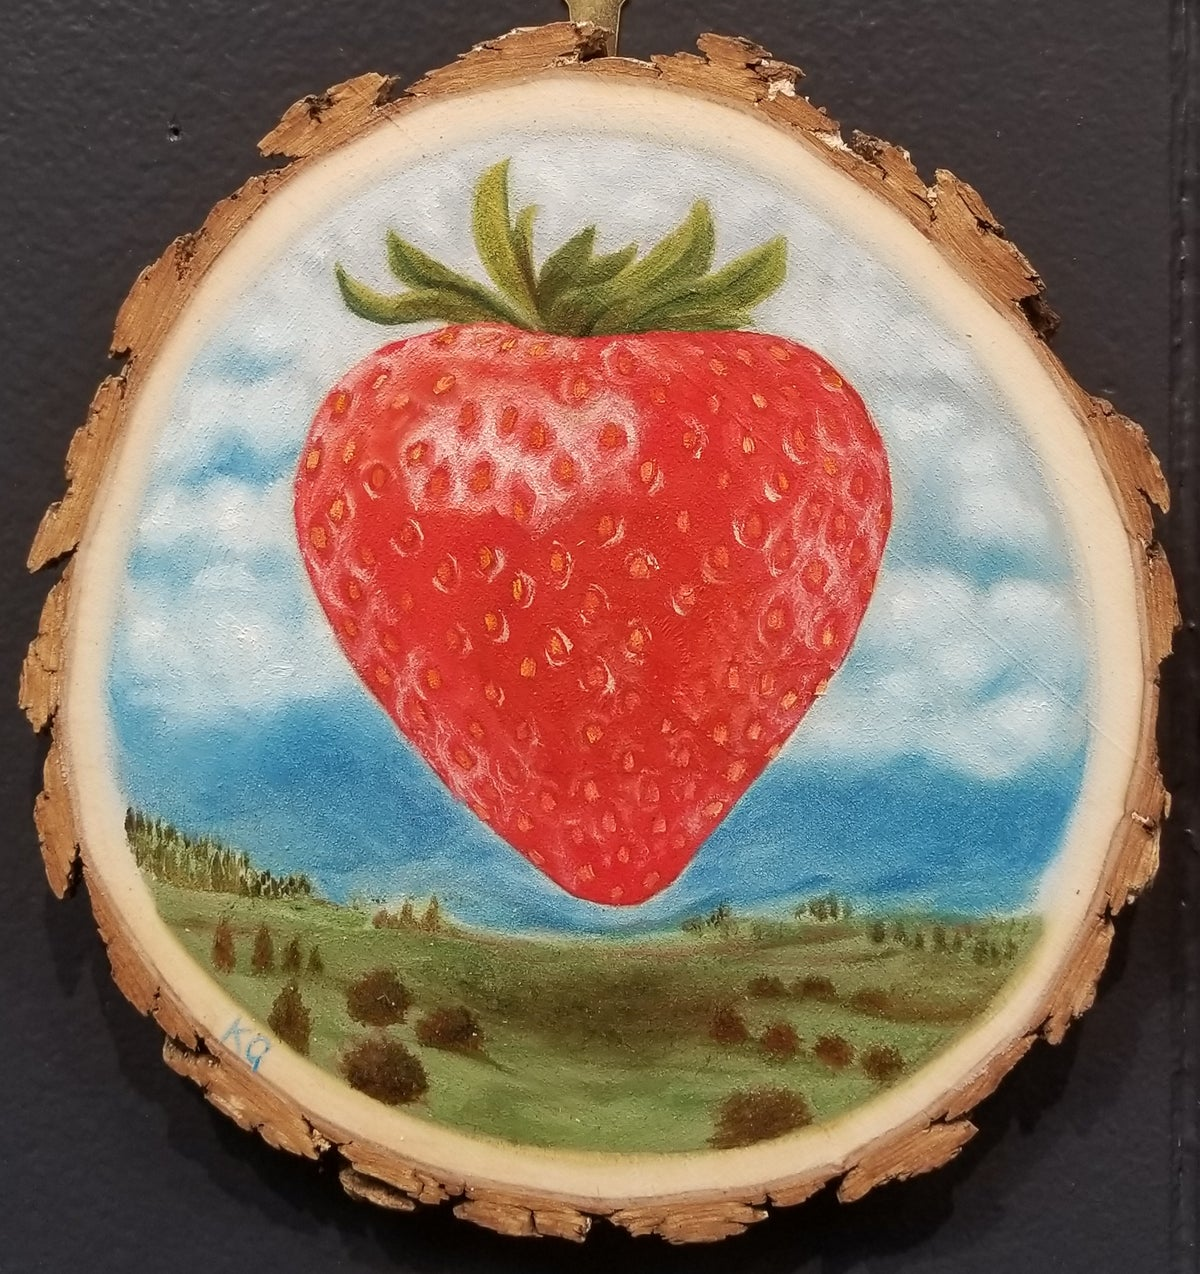 Image of ODE TO A STRAWBERRY by artist K. Grifo